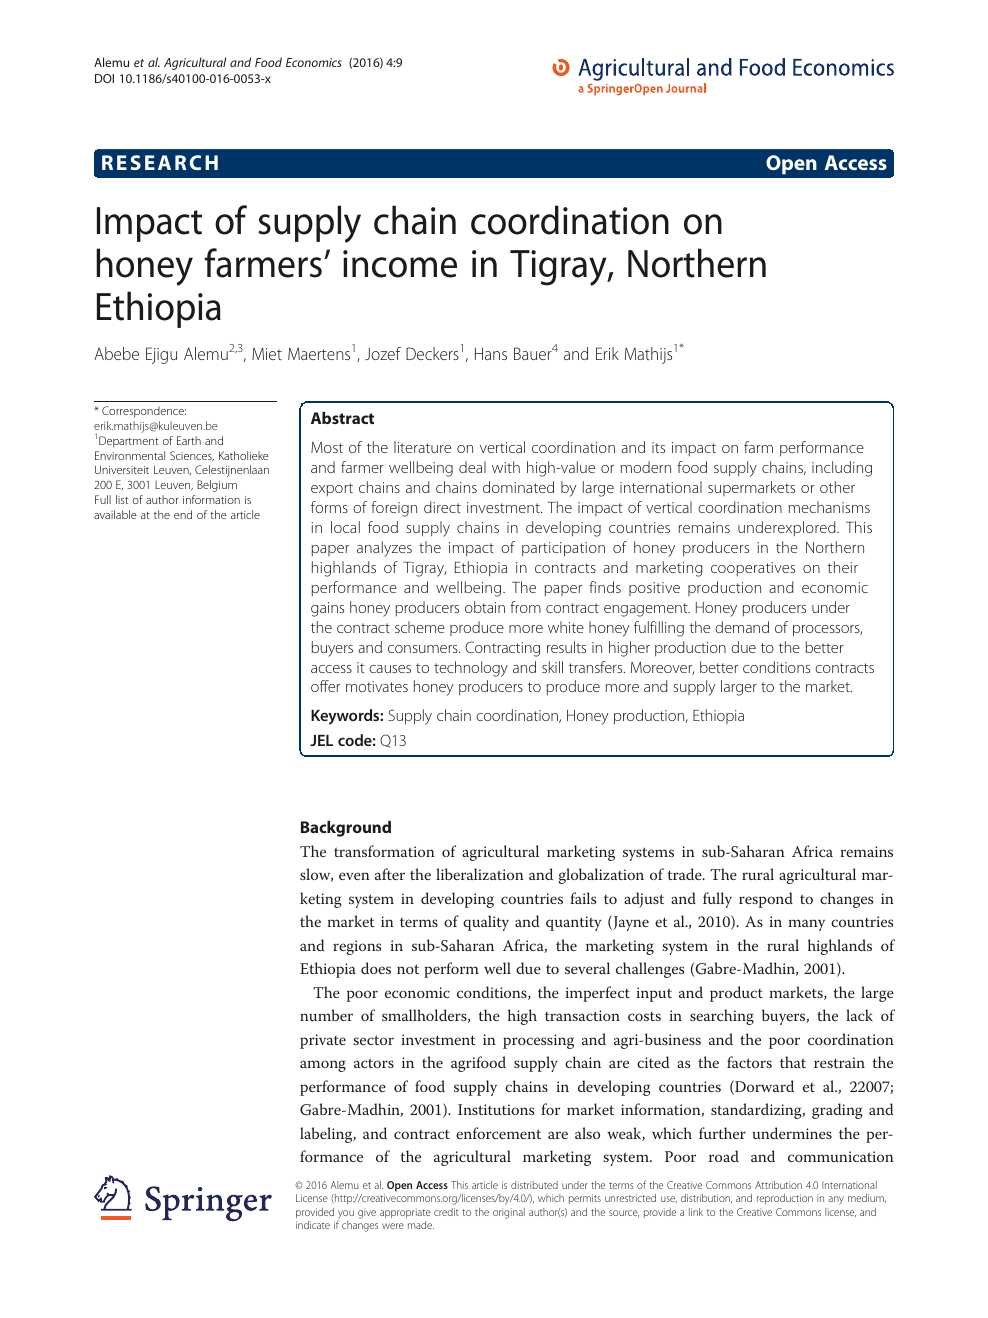 Impact of supply chain coordination on honey farmers' income in